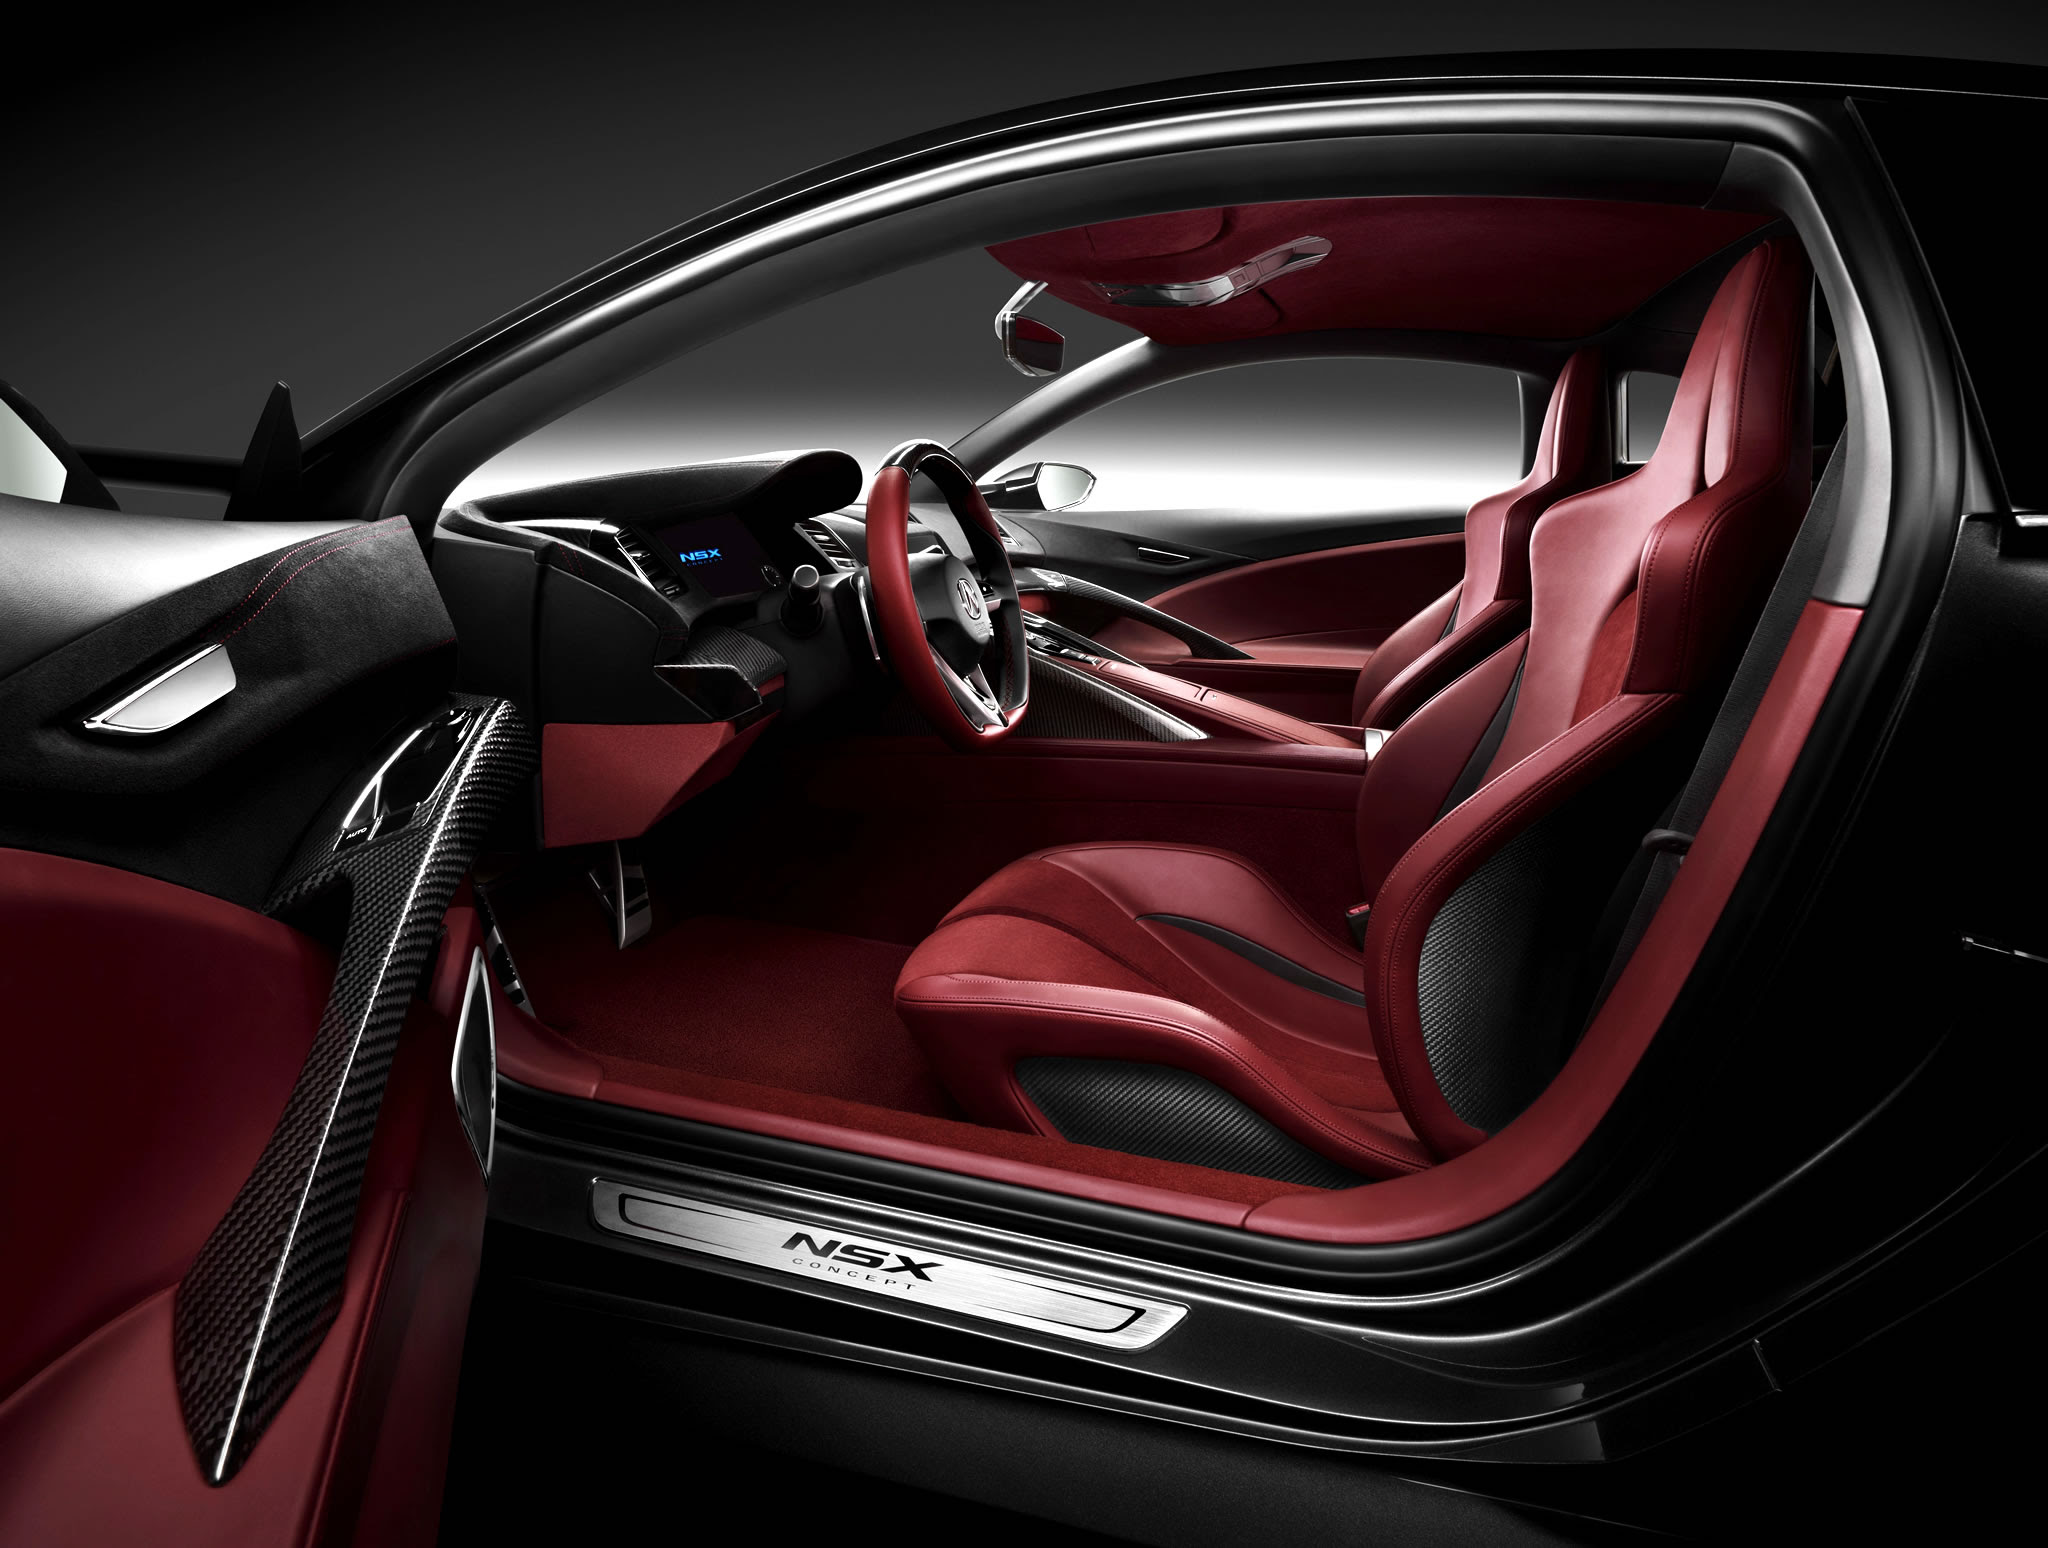 acura nsx to appear at pebble beach  interior photo red